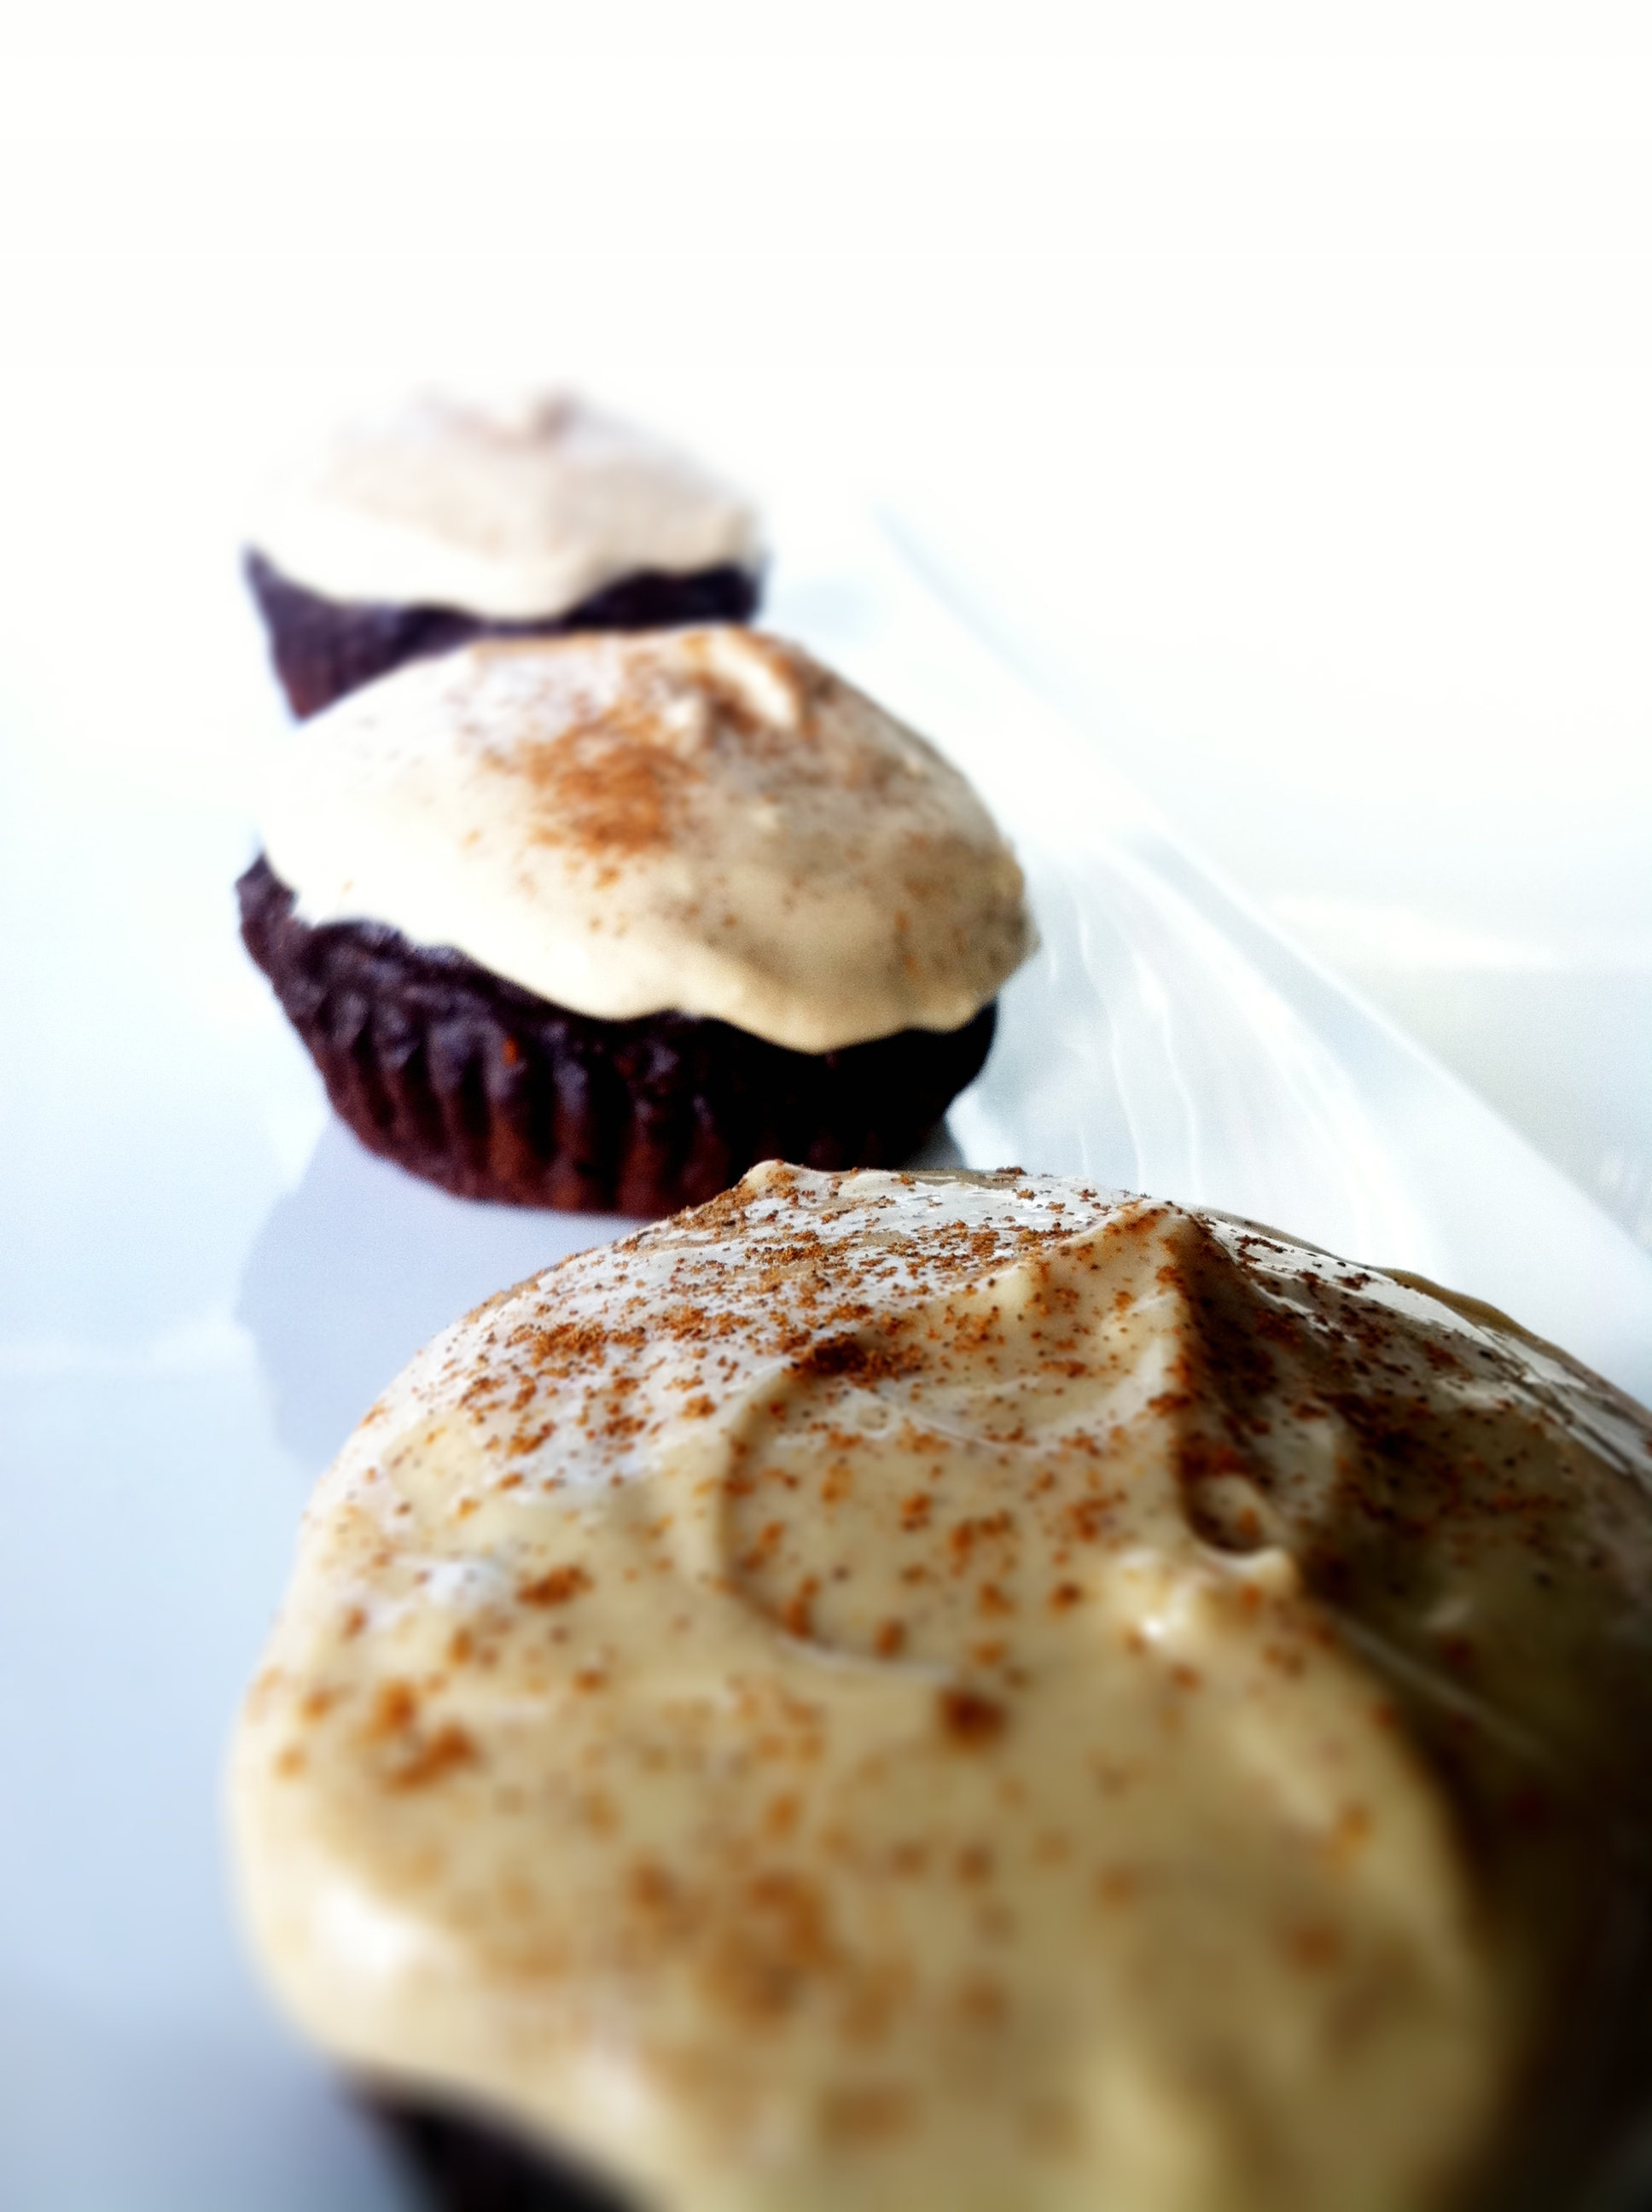 ... Cupcakes with Mint Fudge Icing Skinny Chocolate Protein Cake Skinny